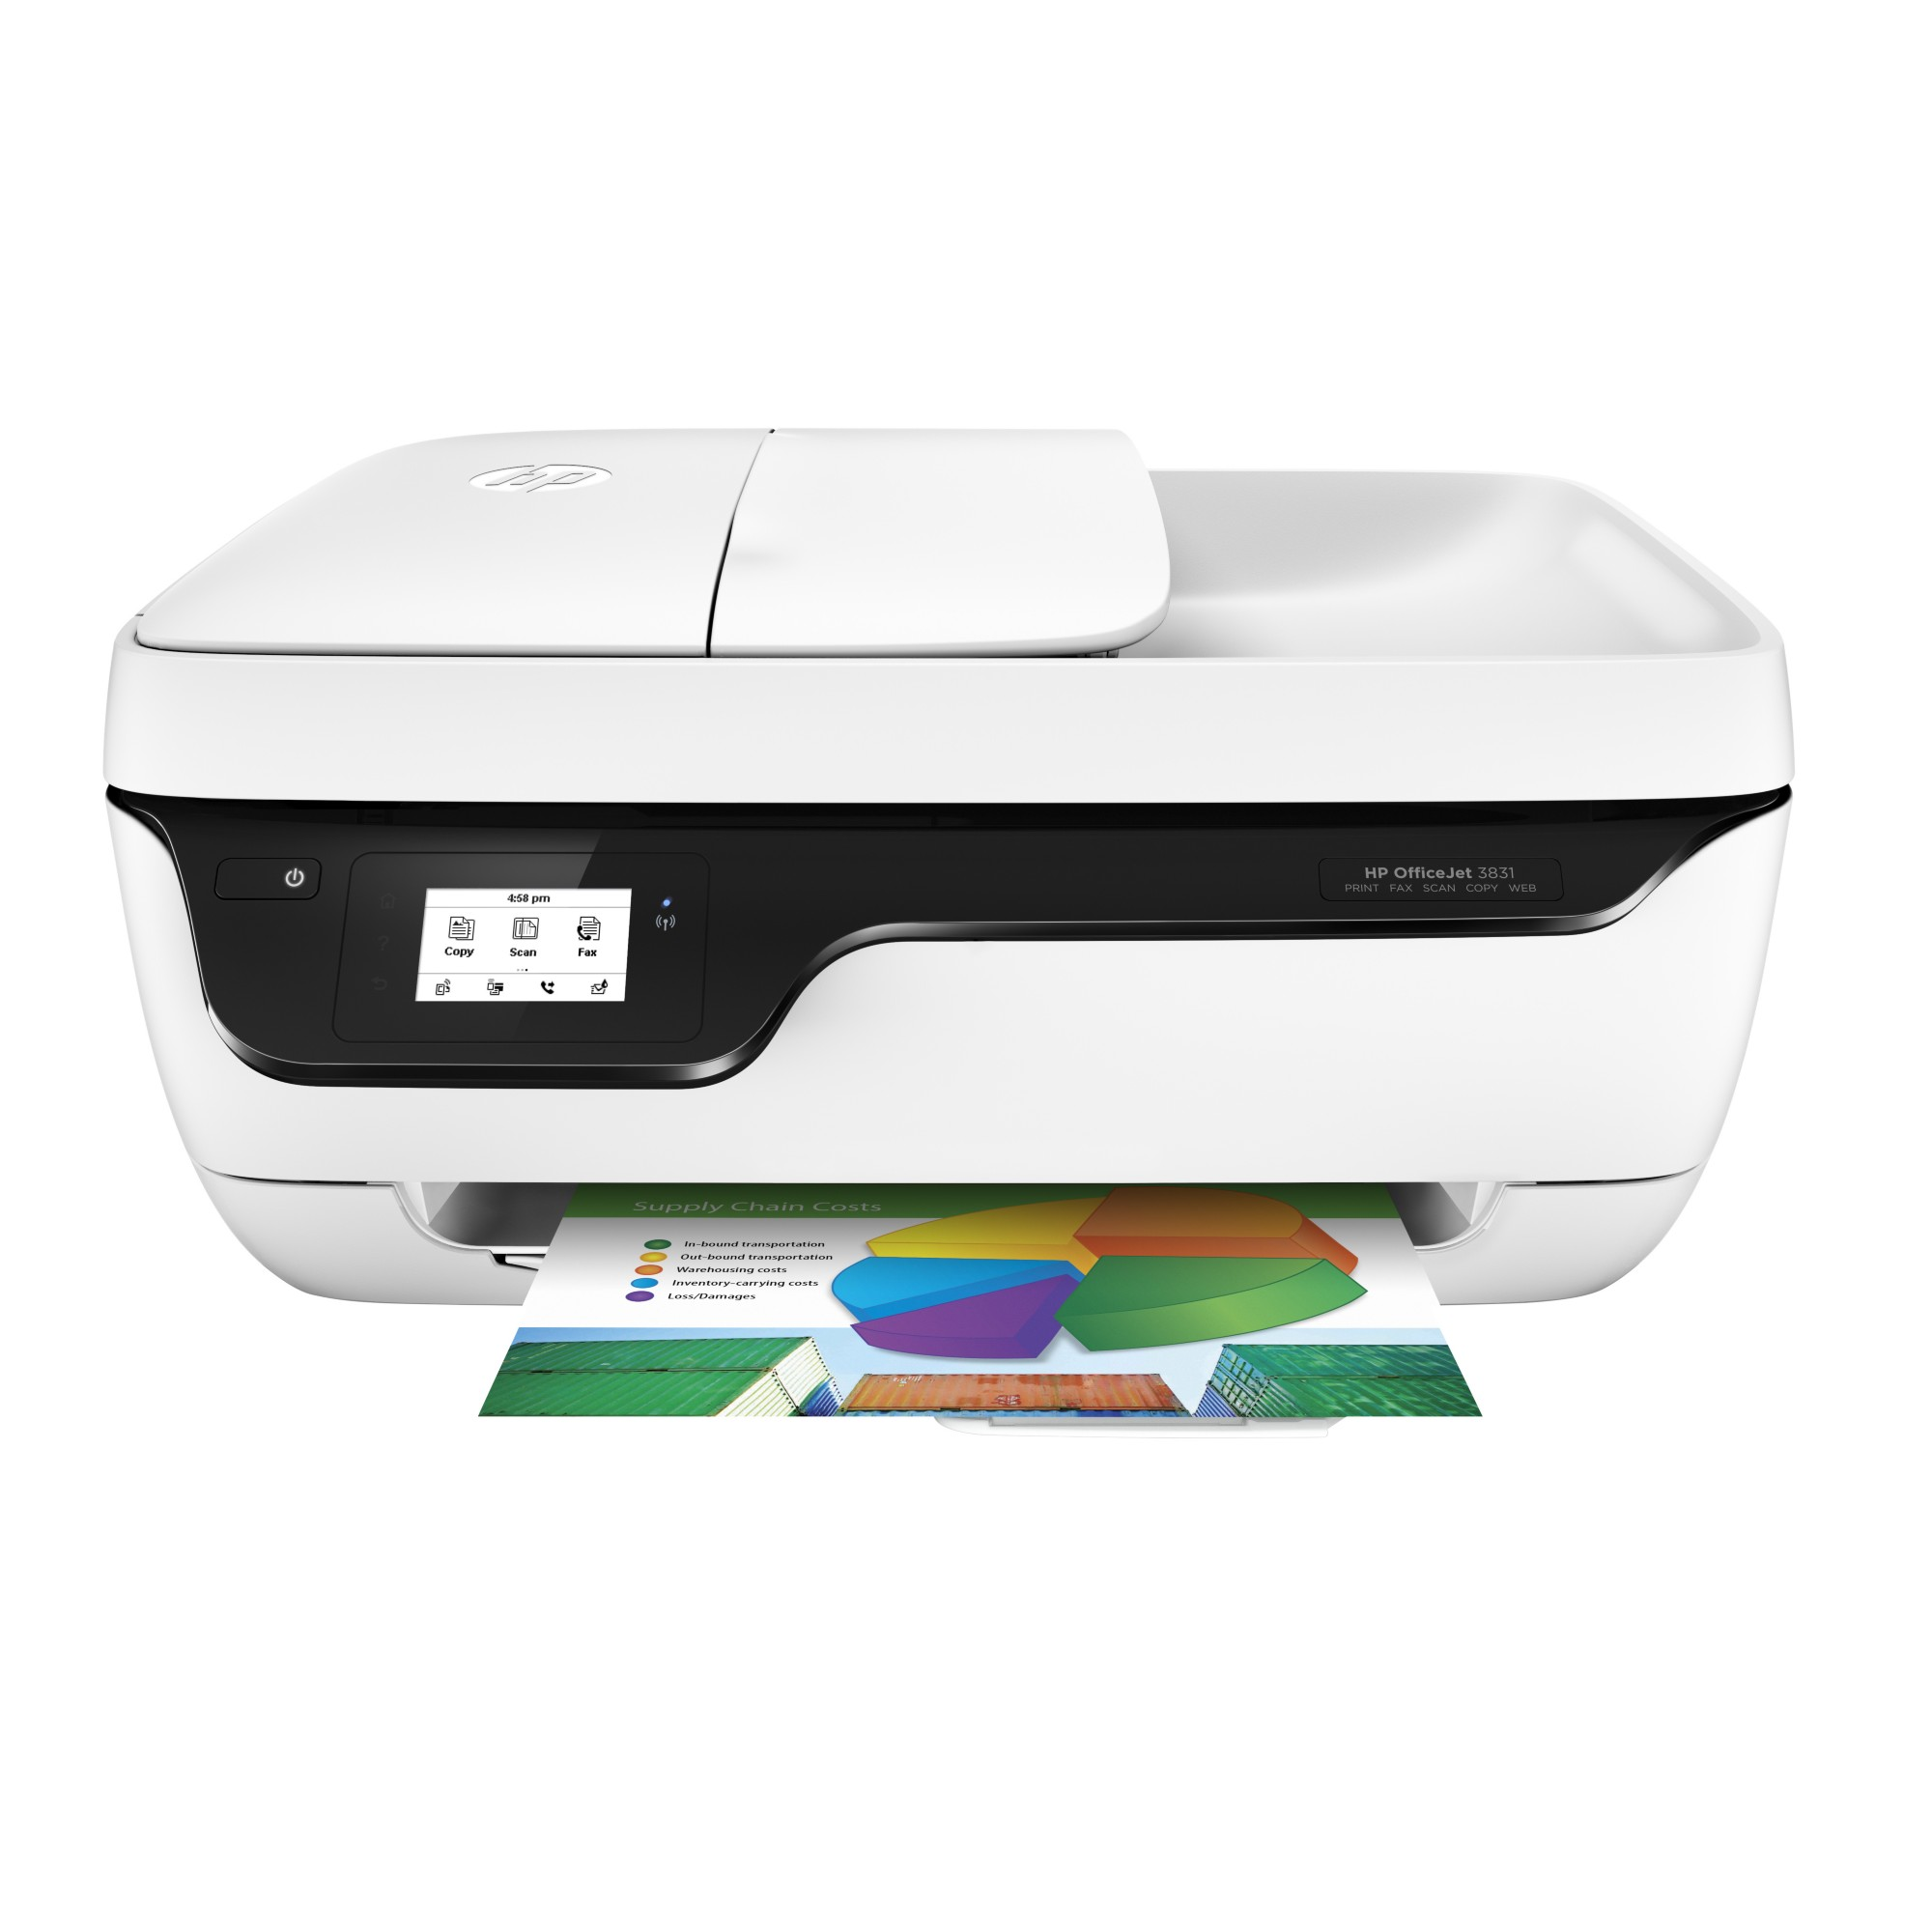 HP OFFICEJET 3831 DRIVER DOWNLOAD (2019)